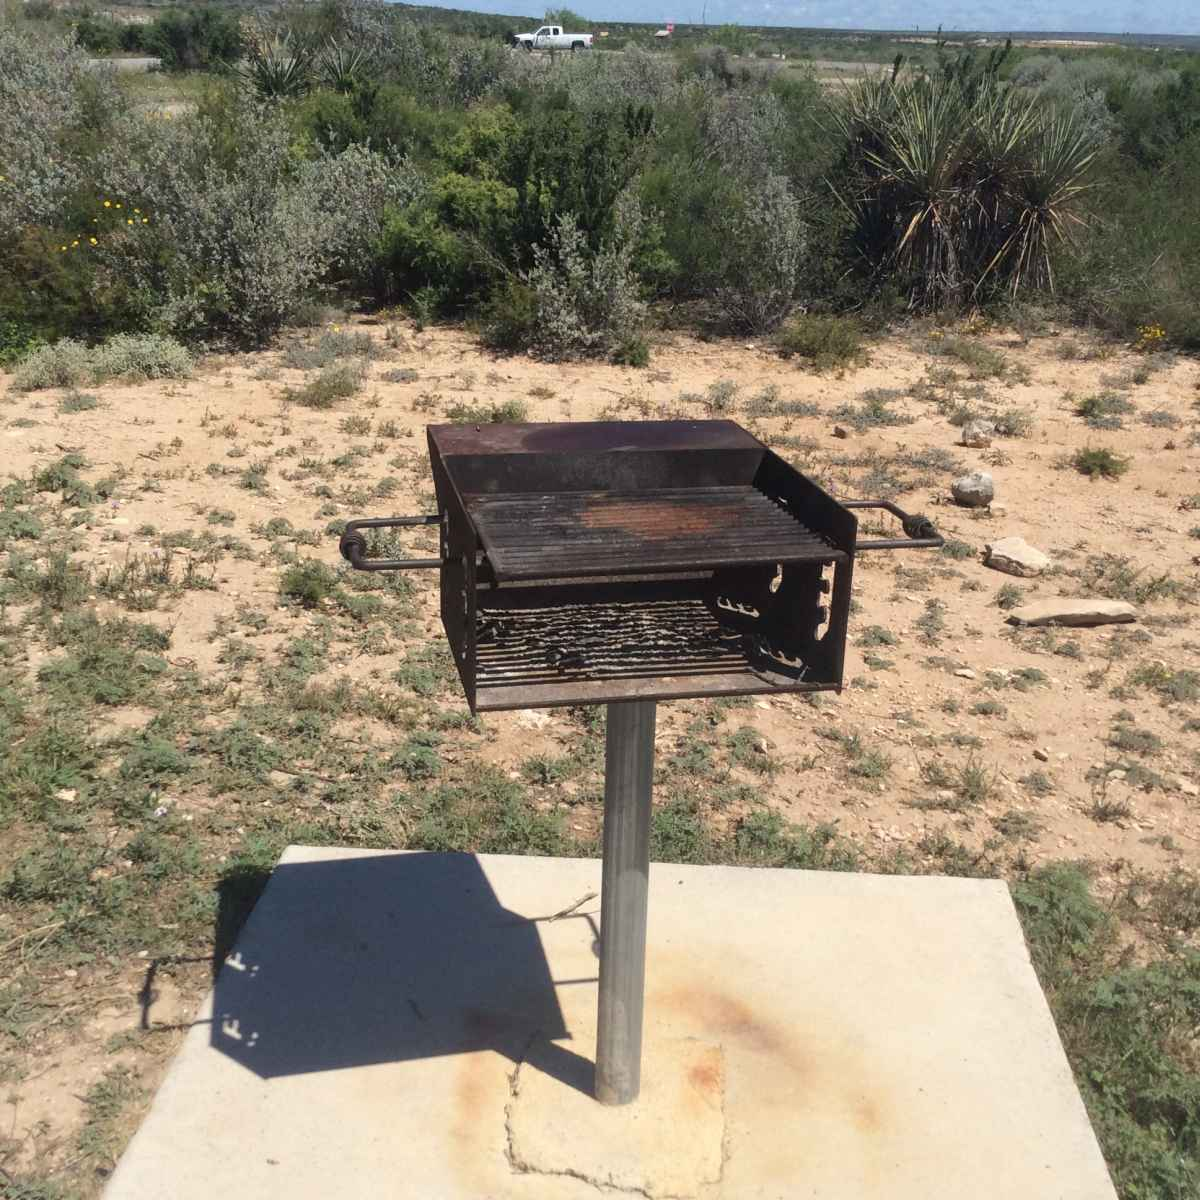 The upright grill at Campsite 44 is designed to be usable to people in wheelchairs.